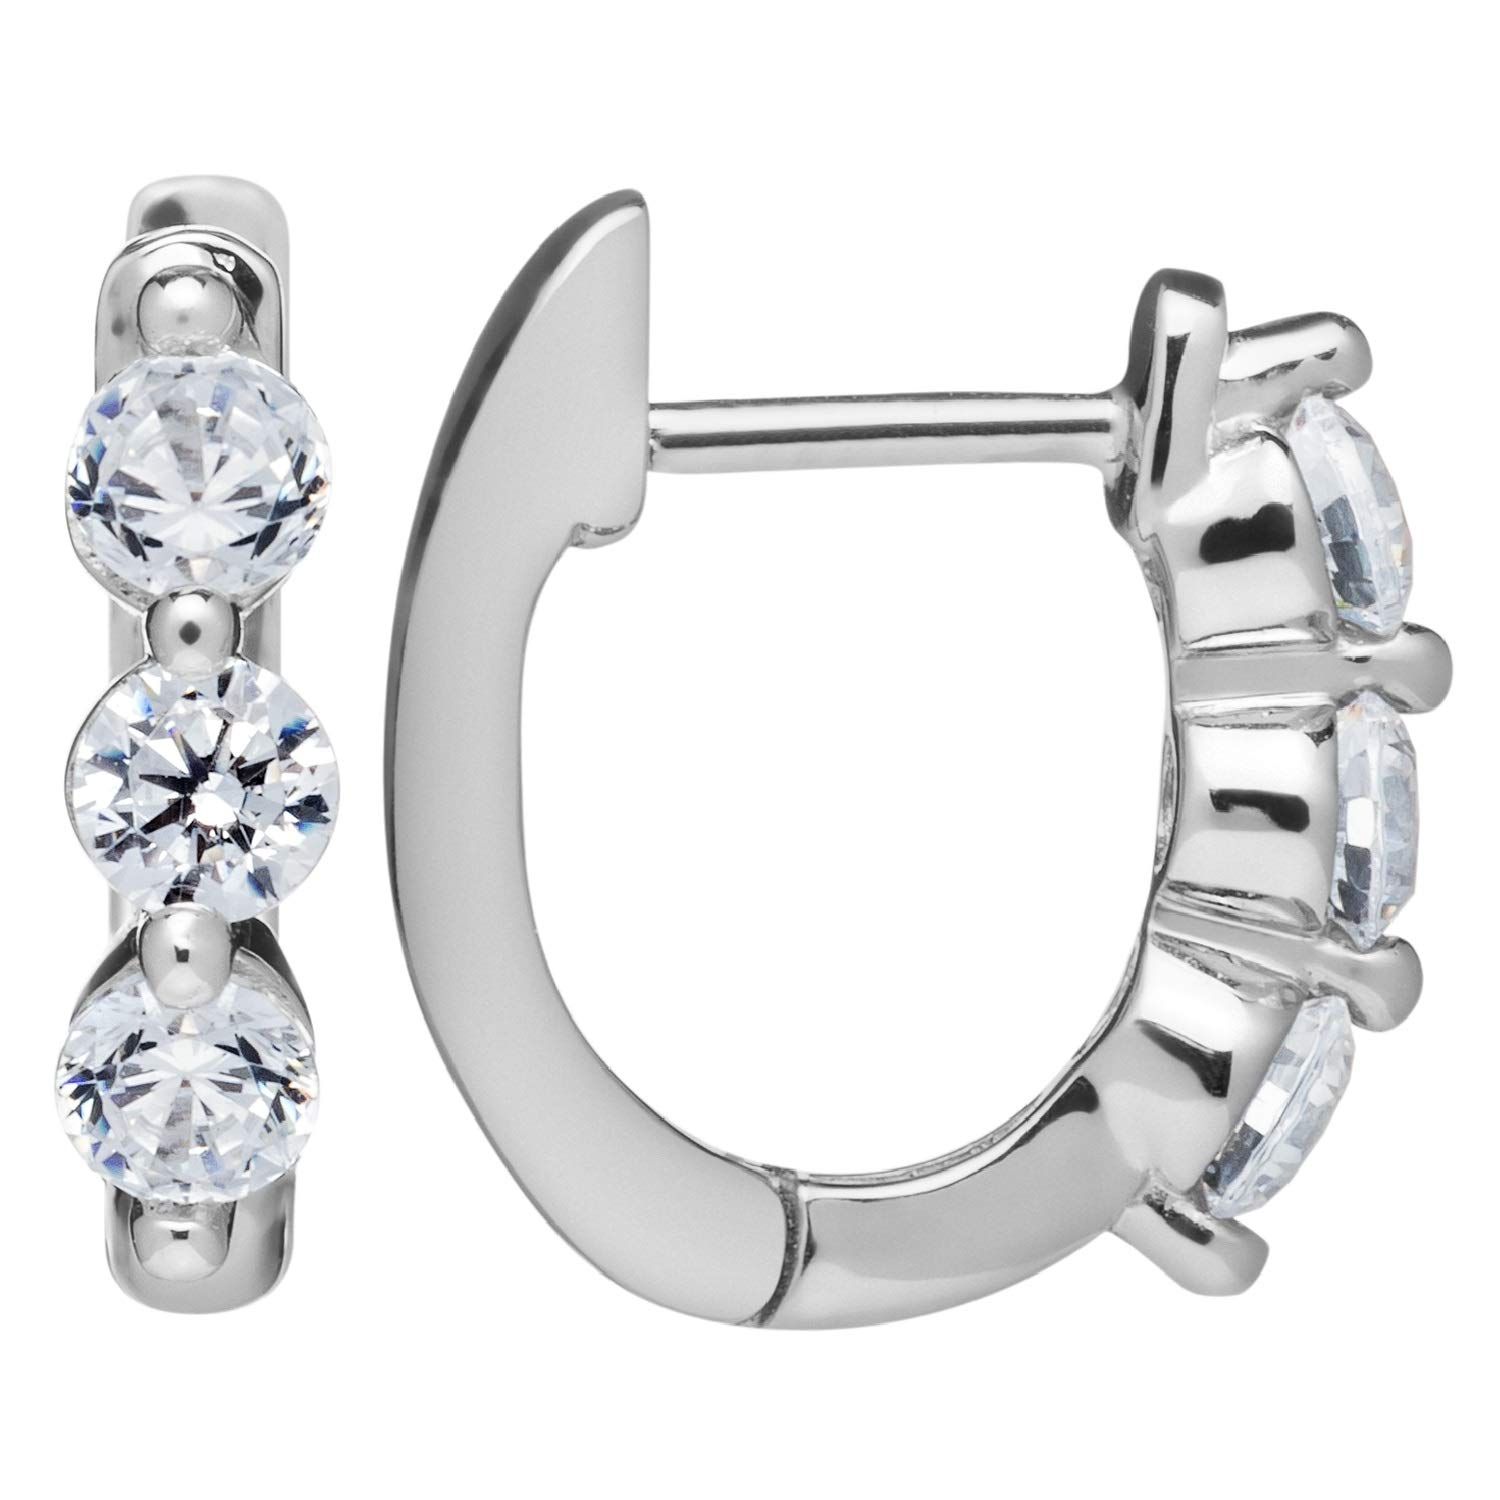 14K Solid White or Yellow Gold Earrings   Round Cut Huggie Hoop   Cubic Zirconia   Choose Pave or 3-Stone Setting   With Gift Box